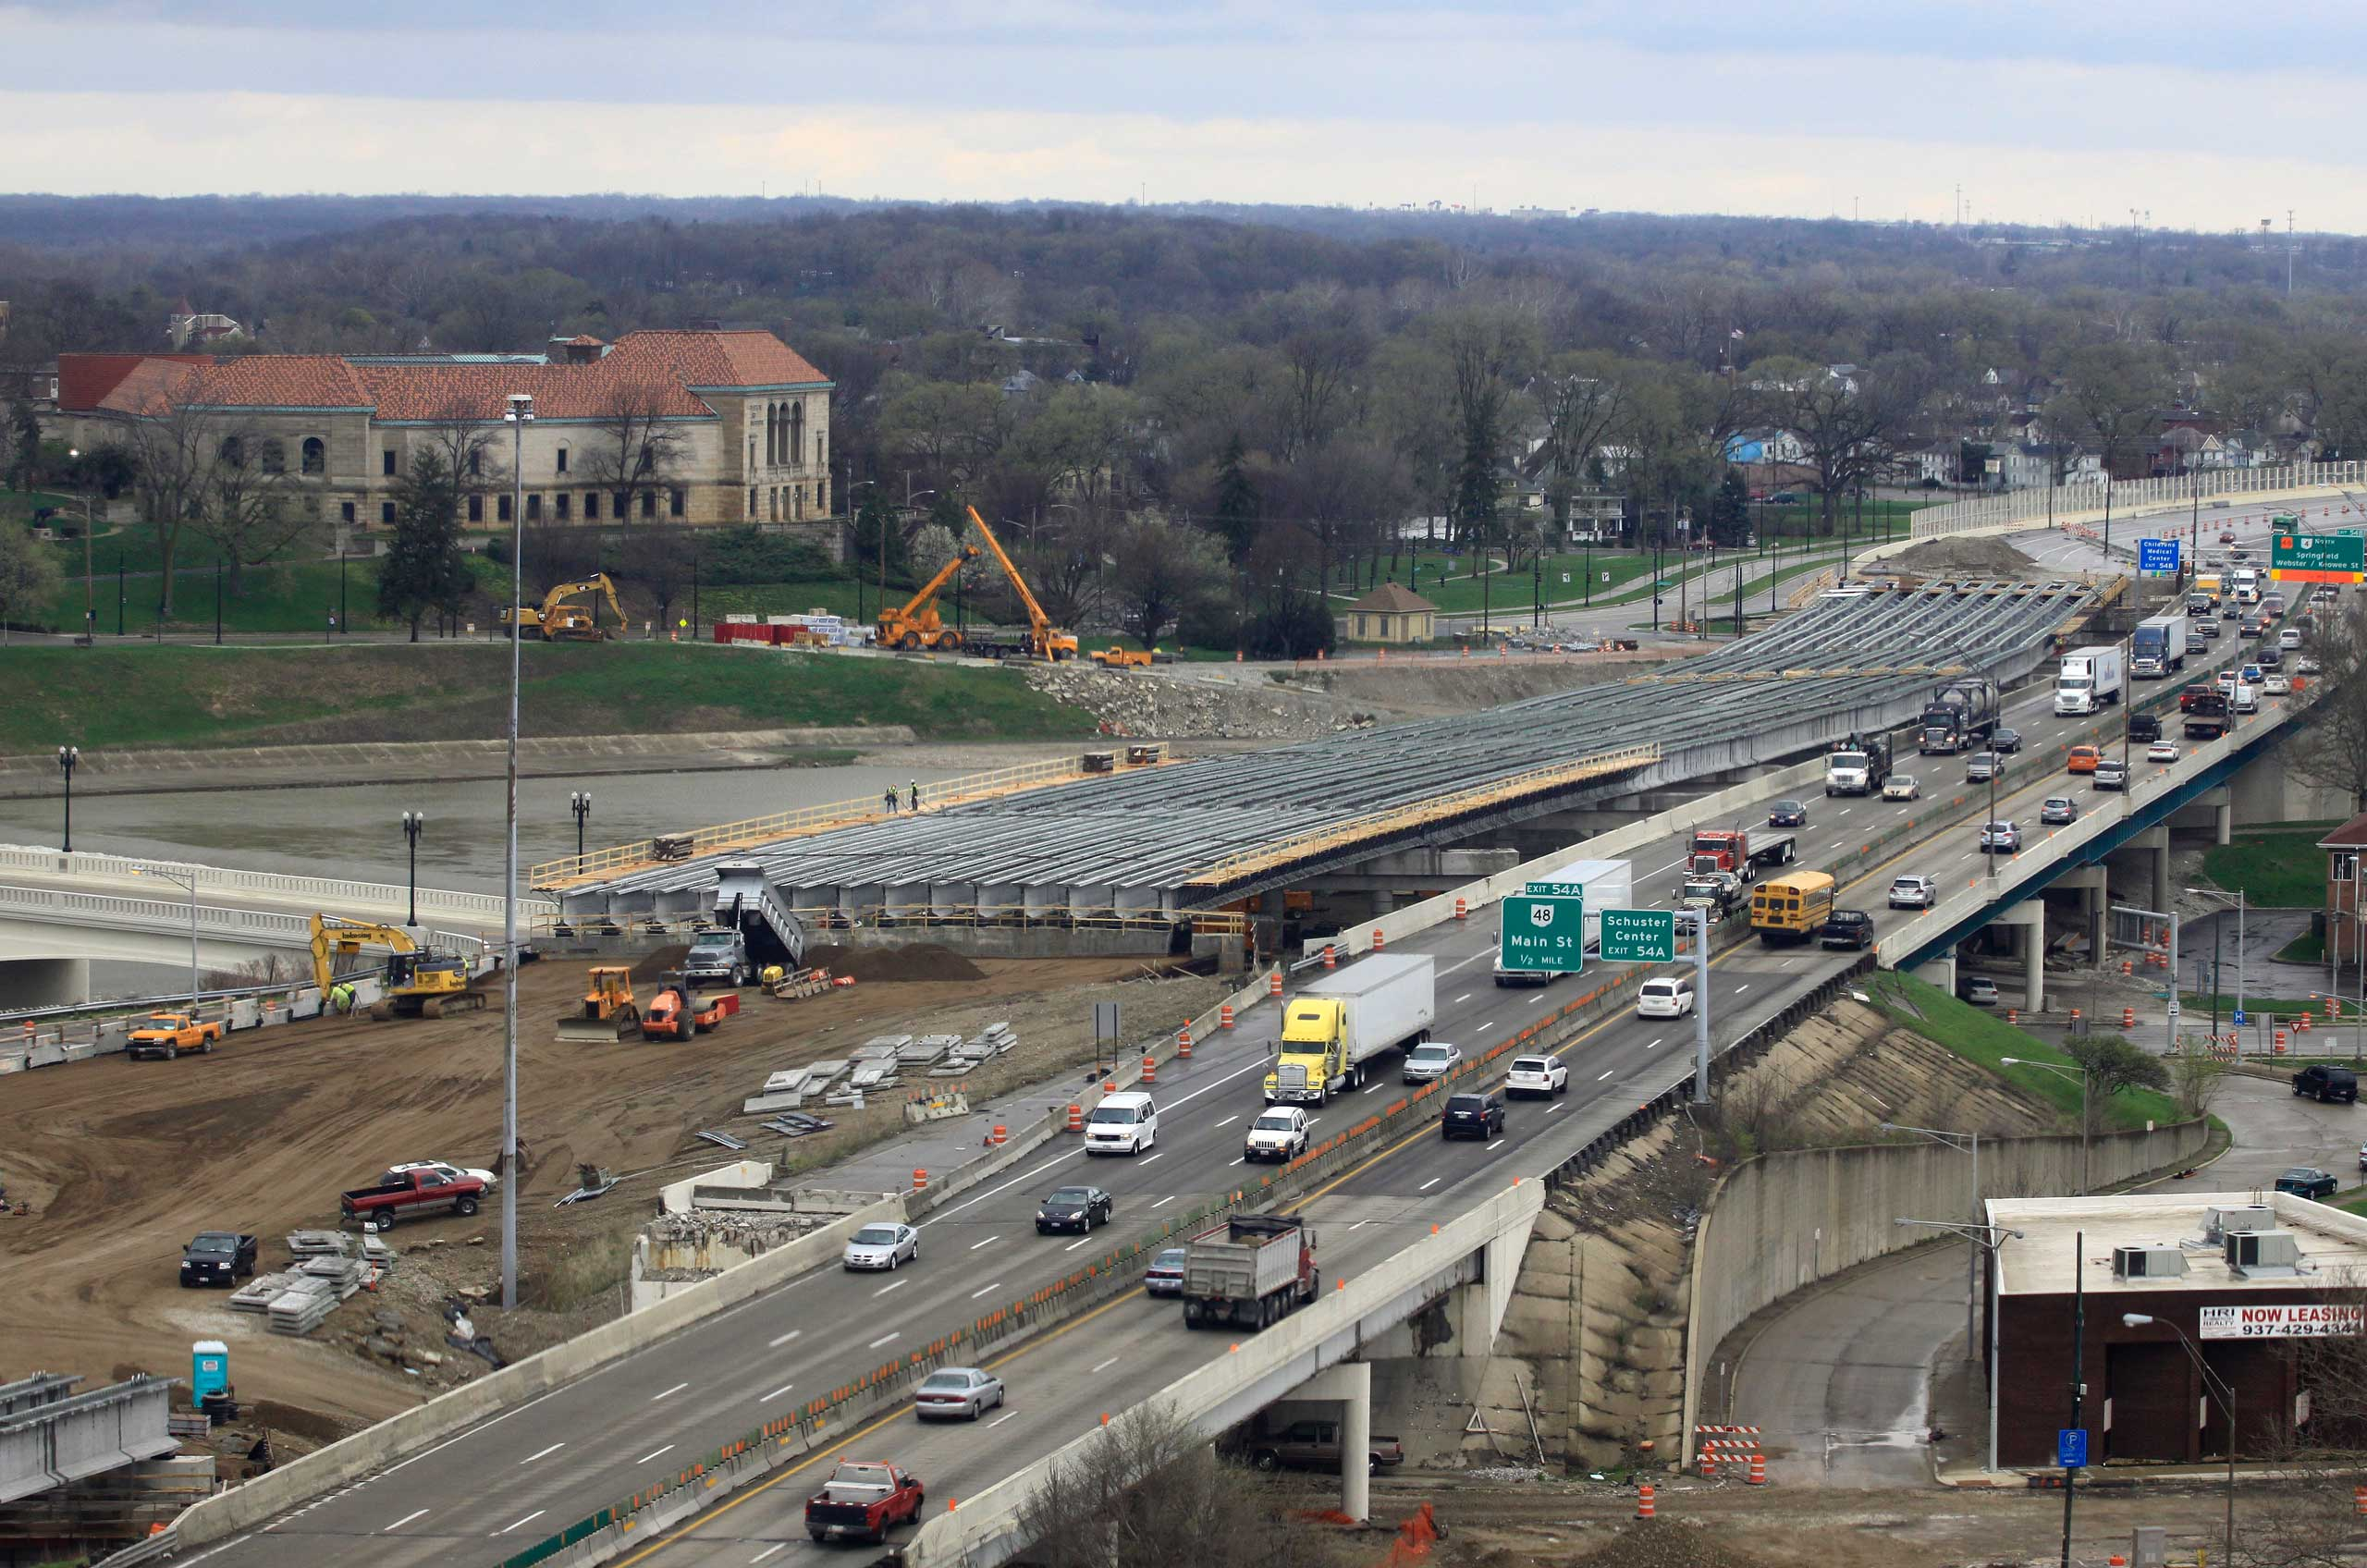 This photo taken April 14, 2014 shows one section of the $500 million I-75 Phase II modernization project in Dayton, Ohio.